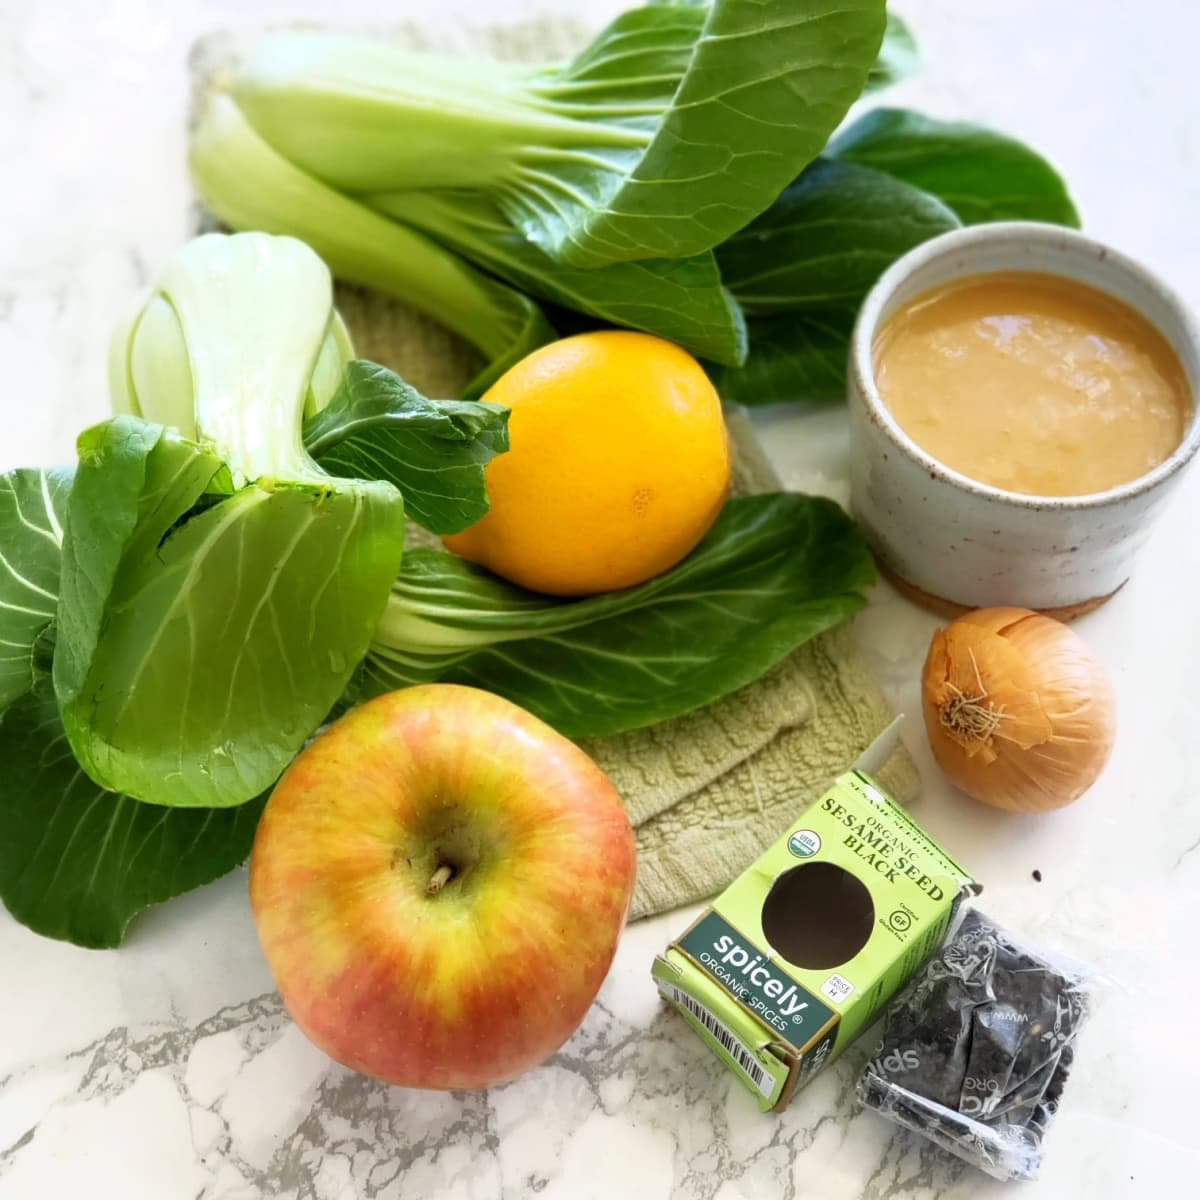 Ingredients for Lemony Baby Bok Choy Apple and Miso Salad -- bok choy, apple, lemon, shallot, black sesame seeds and dressing, on a marble countertop